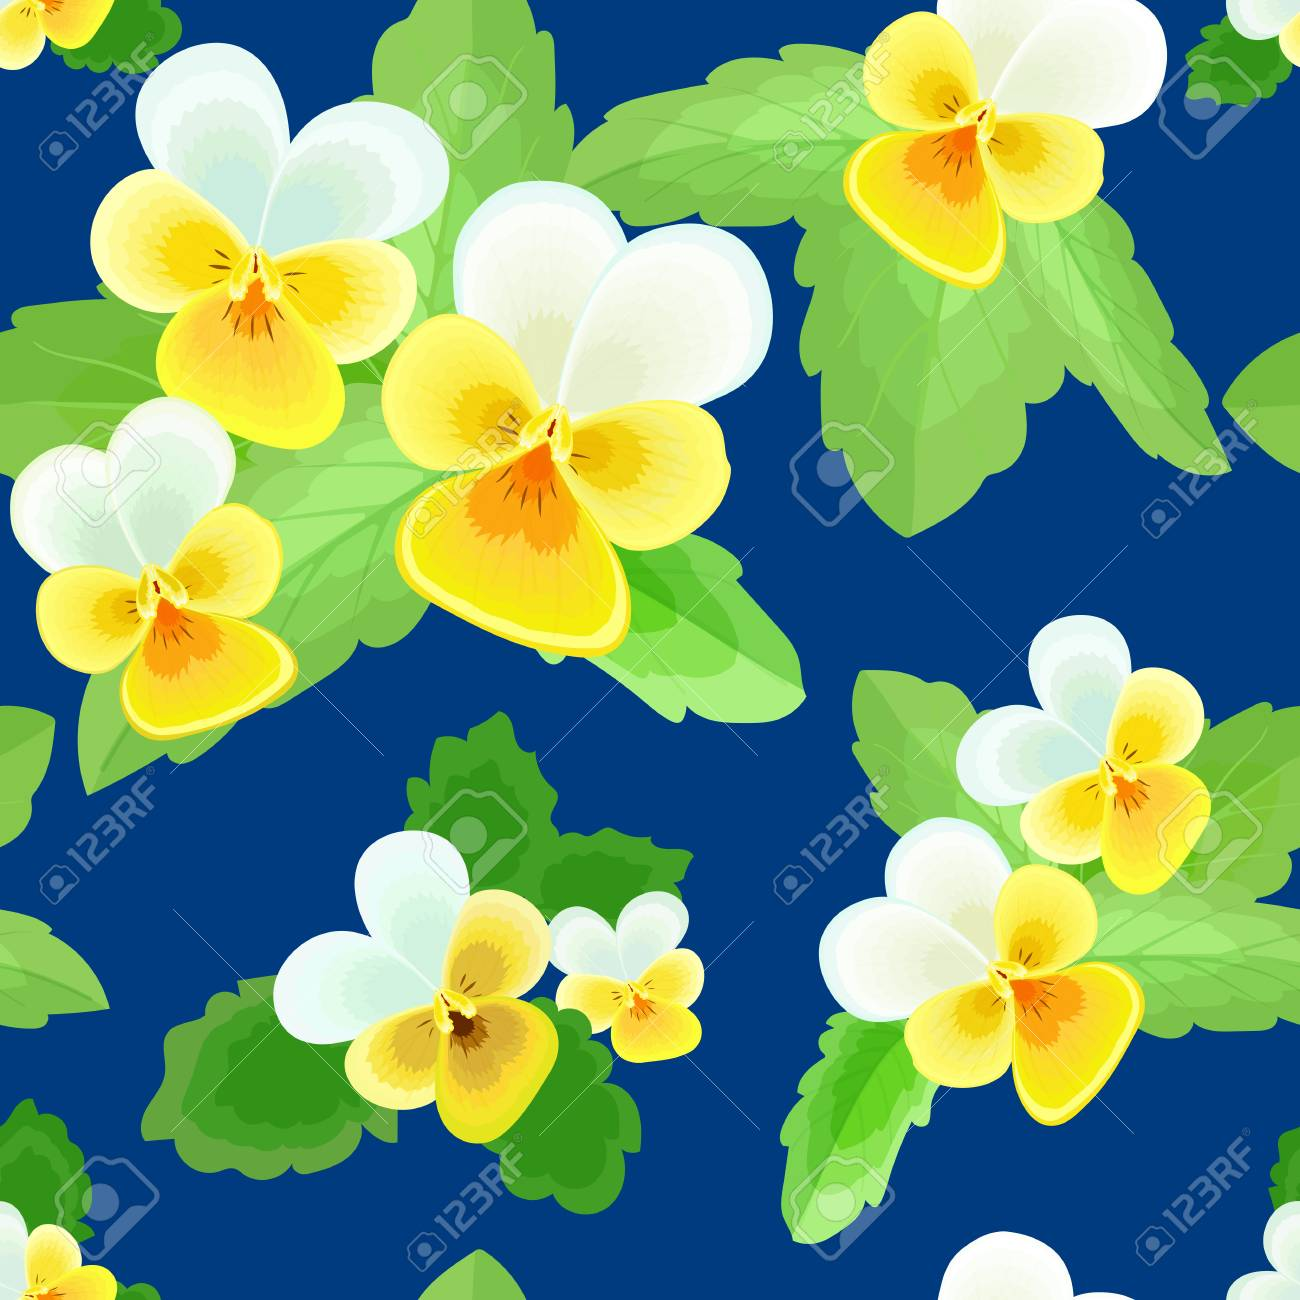 16942e467 Summer seamless pattern with delicate yellow-white flowers on a dark blue  background.Cute